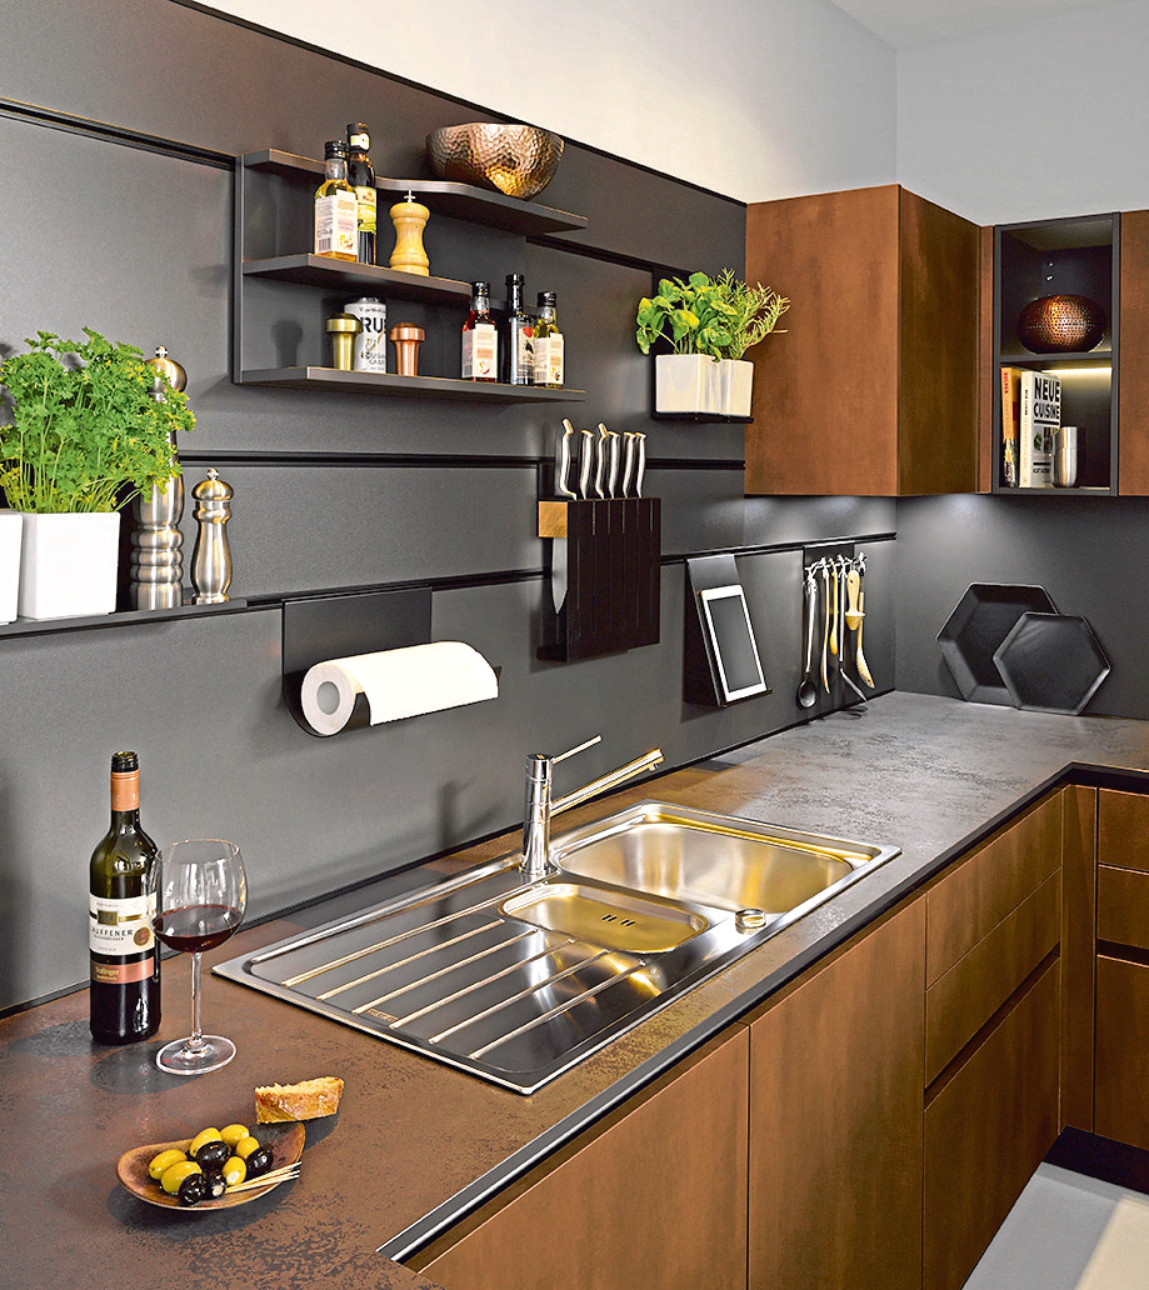 Make Sure Your Kitchen Space Works For You With North East